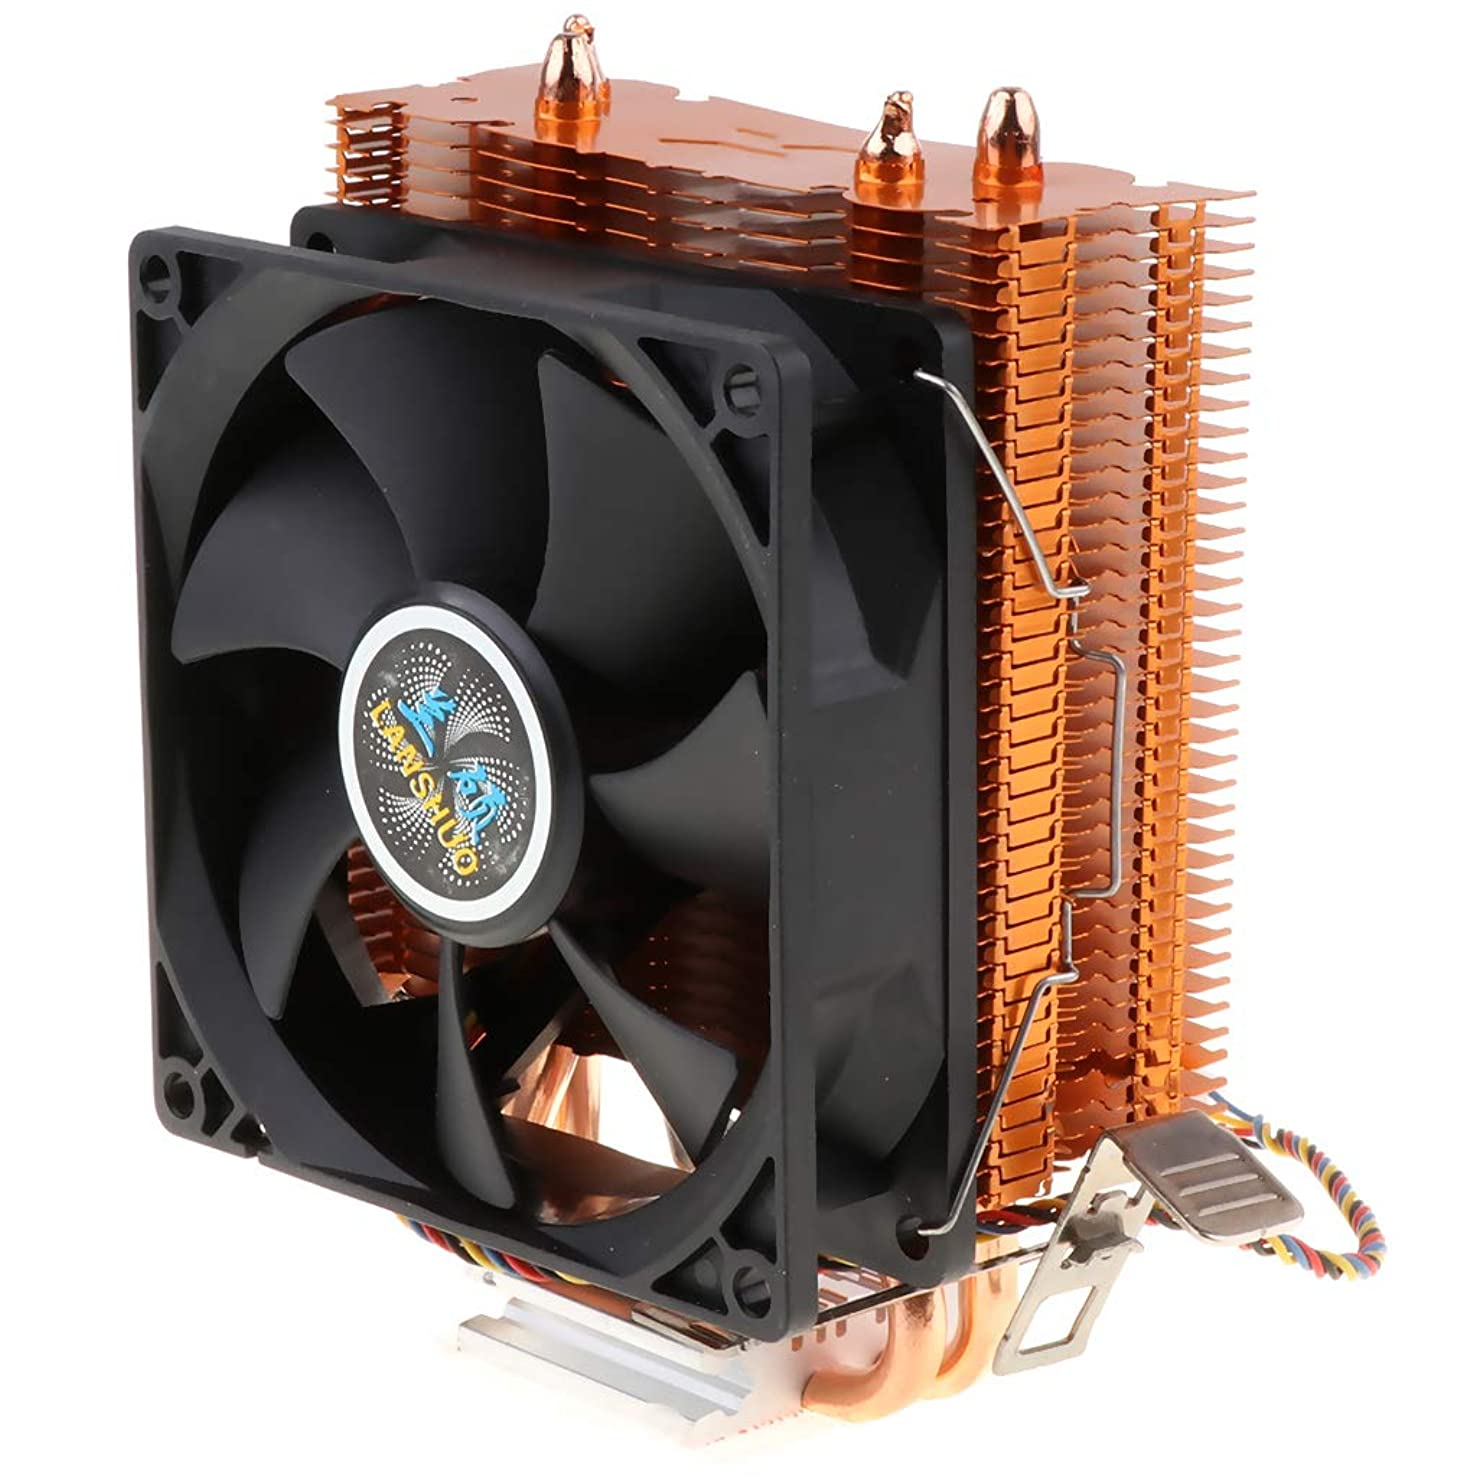 kesoto 4 Wire CPU Cooling Fan Heatsink Kit with Fins for Desktop Computer Motherboard Cooler Accessory 3Pin 12V 2200RPM 48CFM